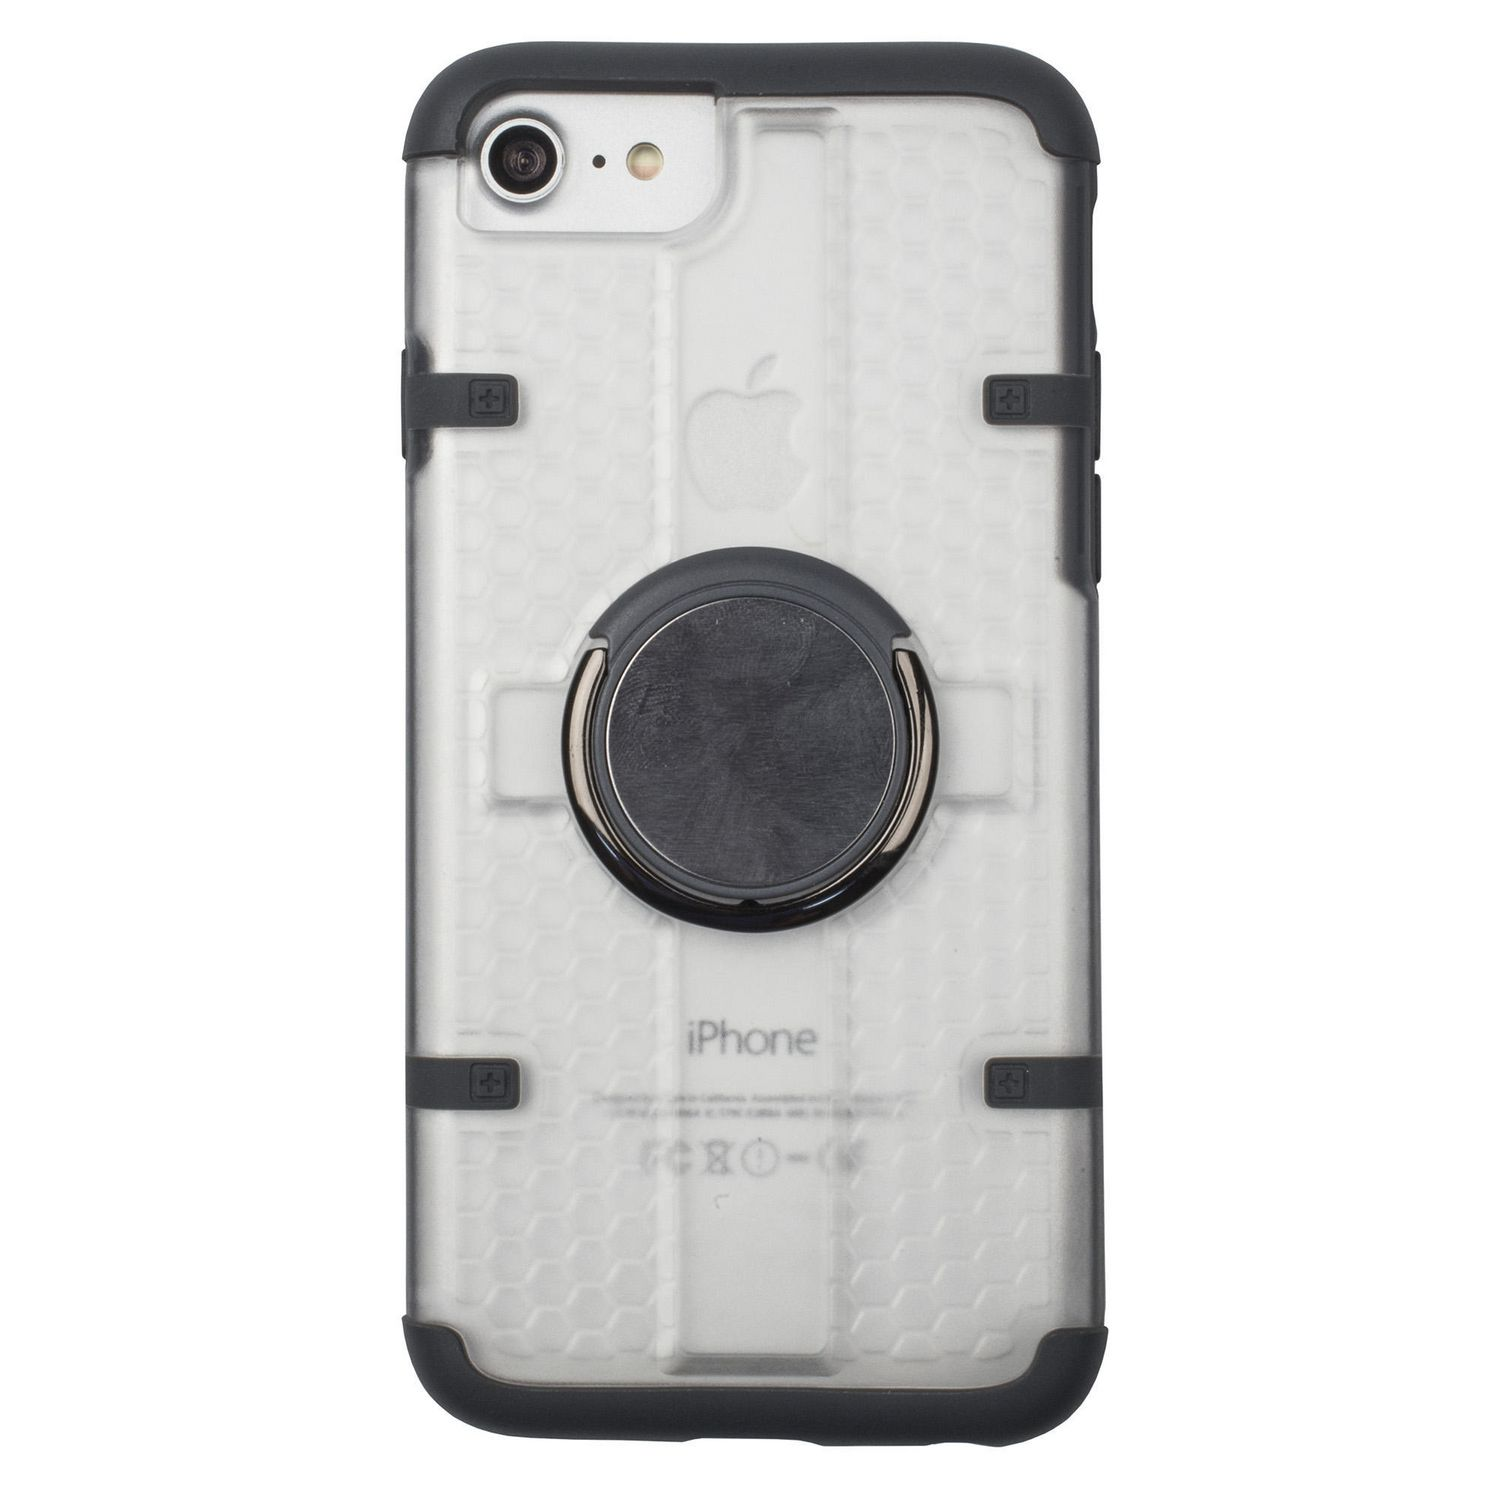 new products 8beb6 a7db9 Blackweb Shockproof Ring Case for iPhone 6/6s/7